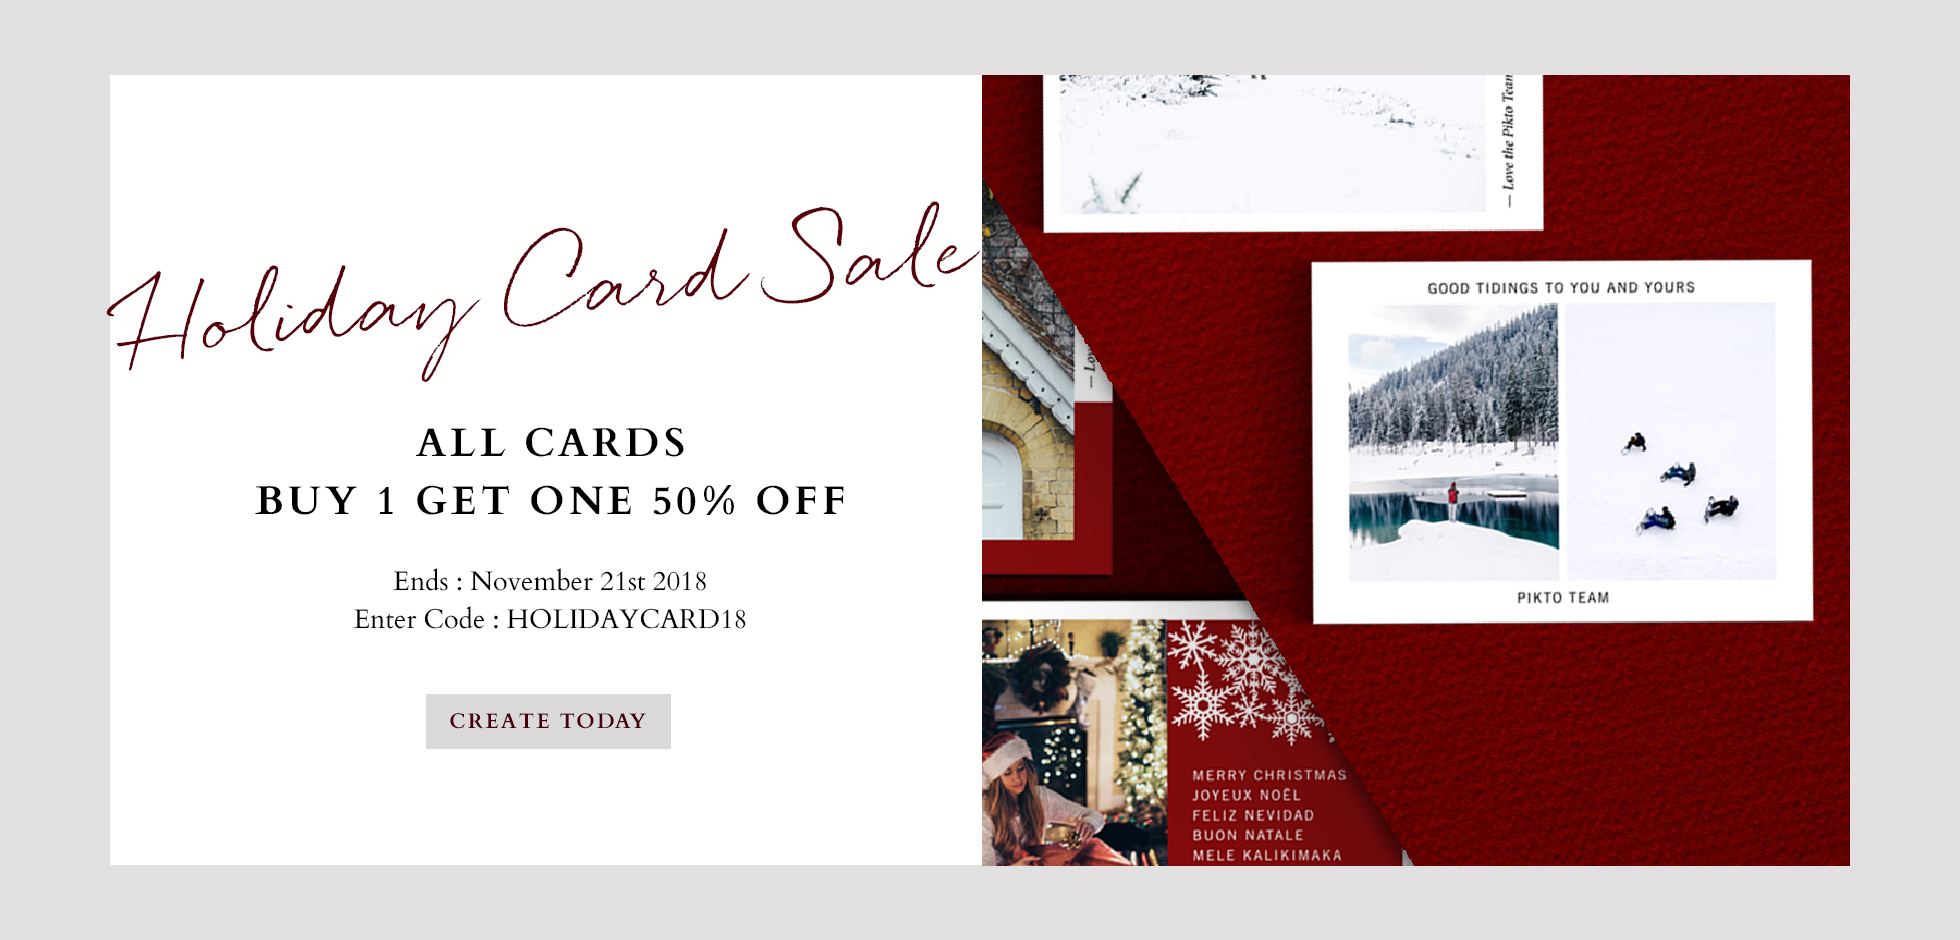 Holiday card sale 2018